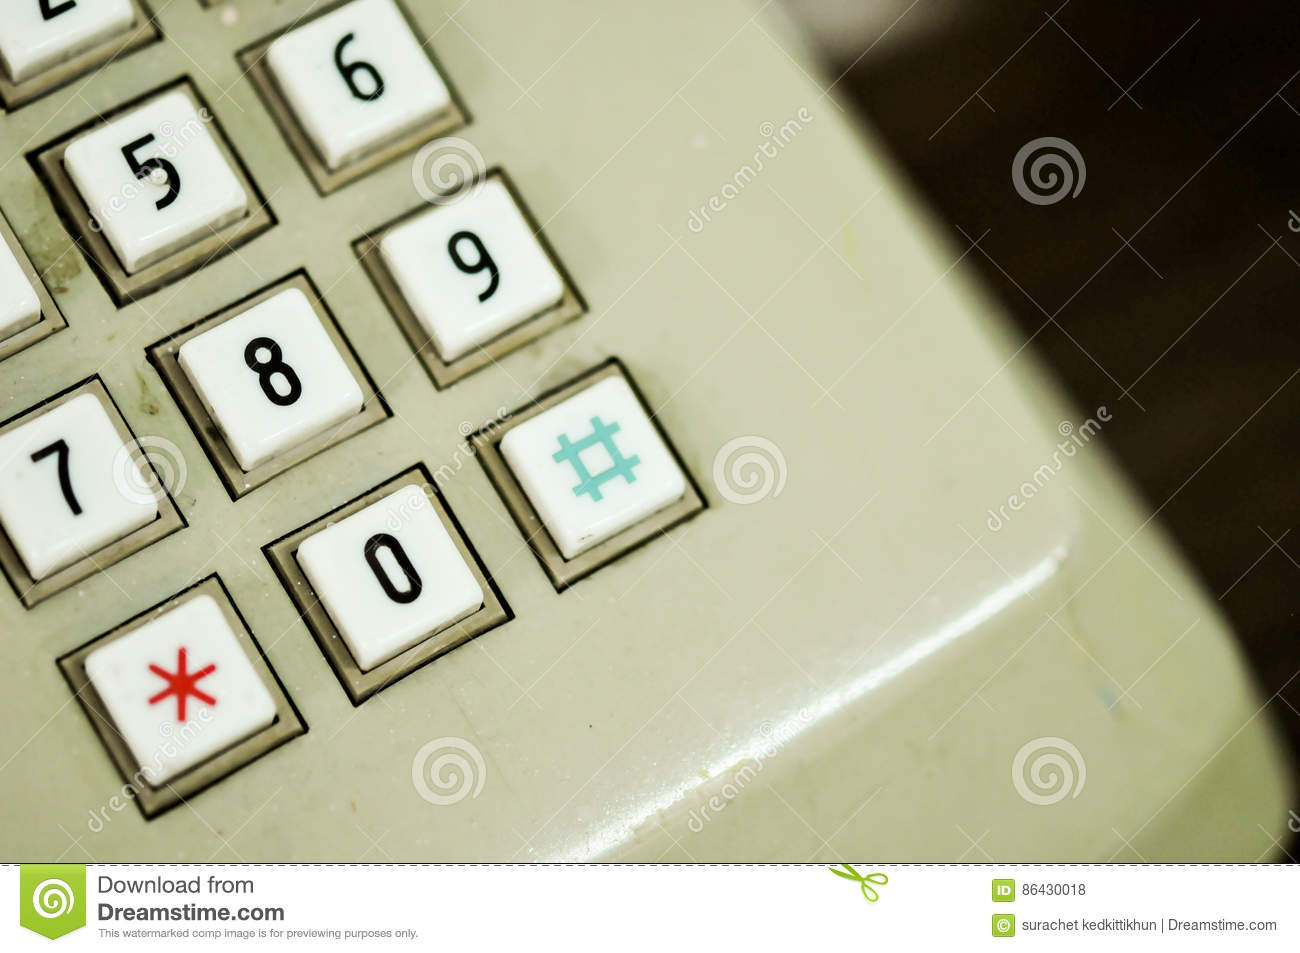 Numeric Pad Of A Old Telephone Home Editorial Stock Photo Image Of Call Numeric 86430018